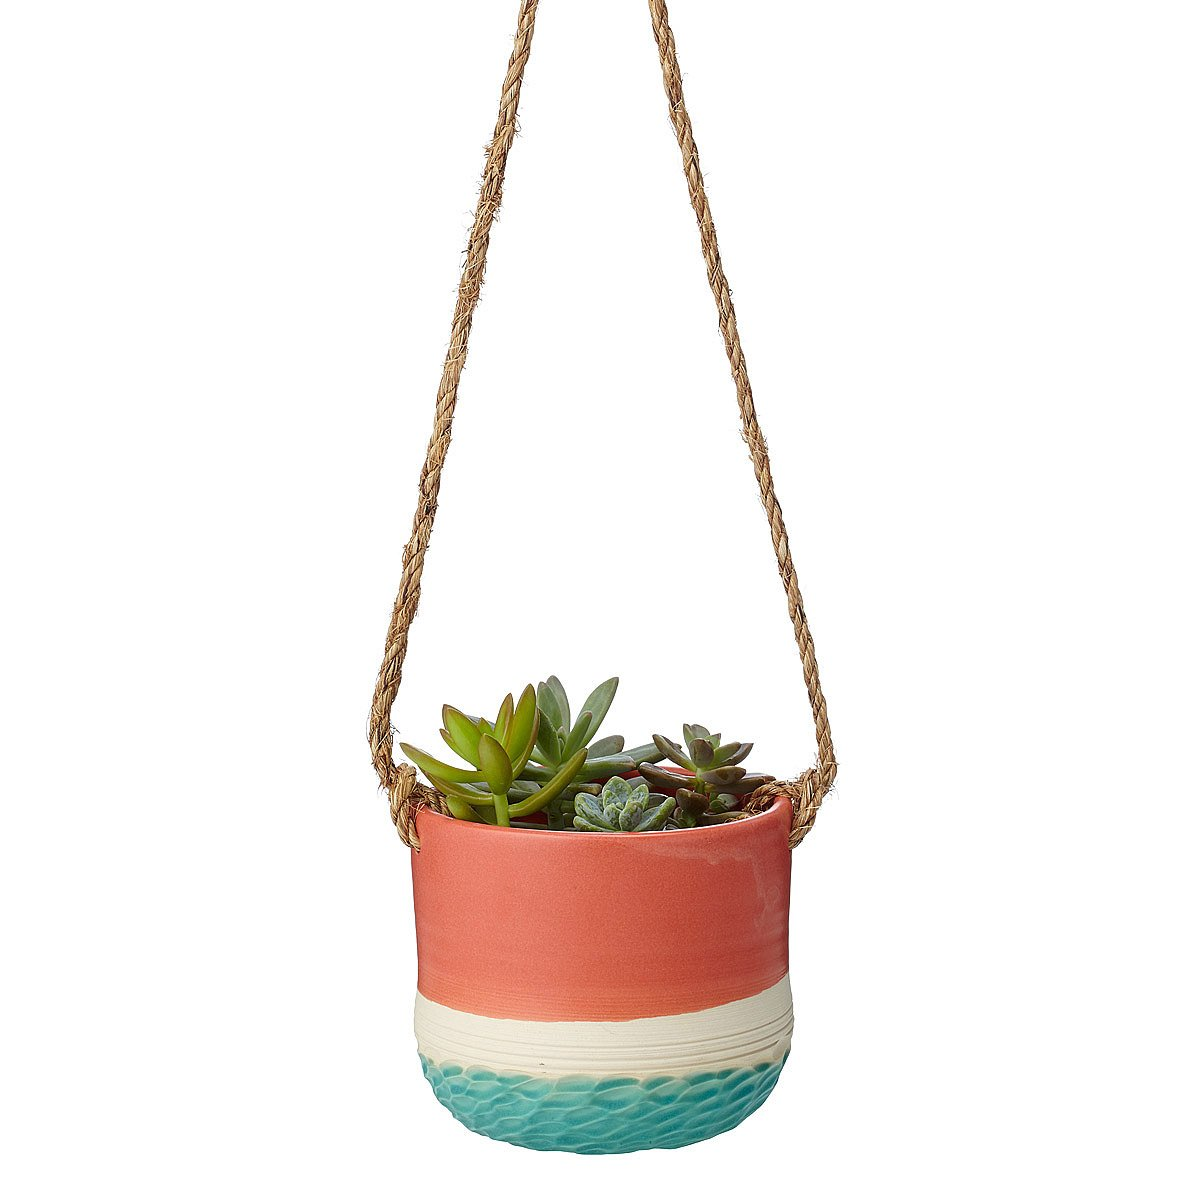 Hanging Planter Coral Carved Hanging Planter Handmade Planter Uncommongoods